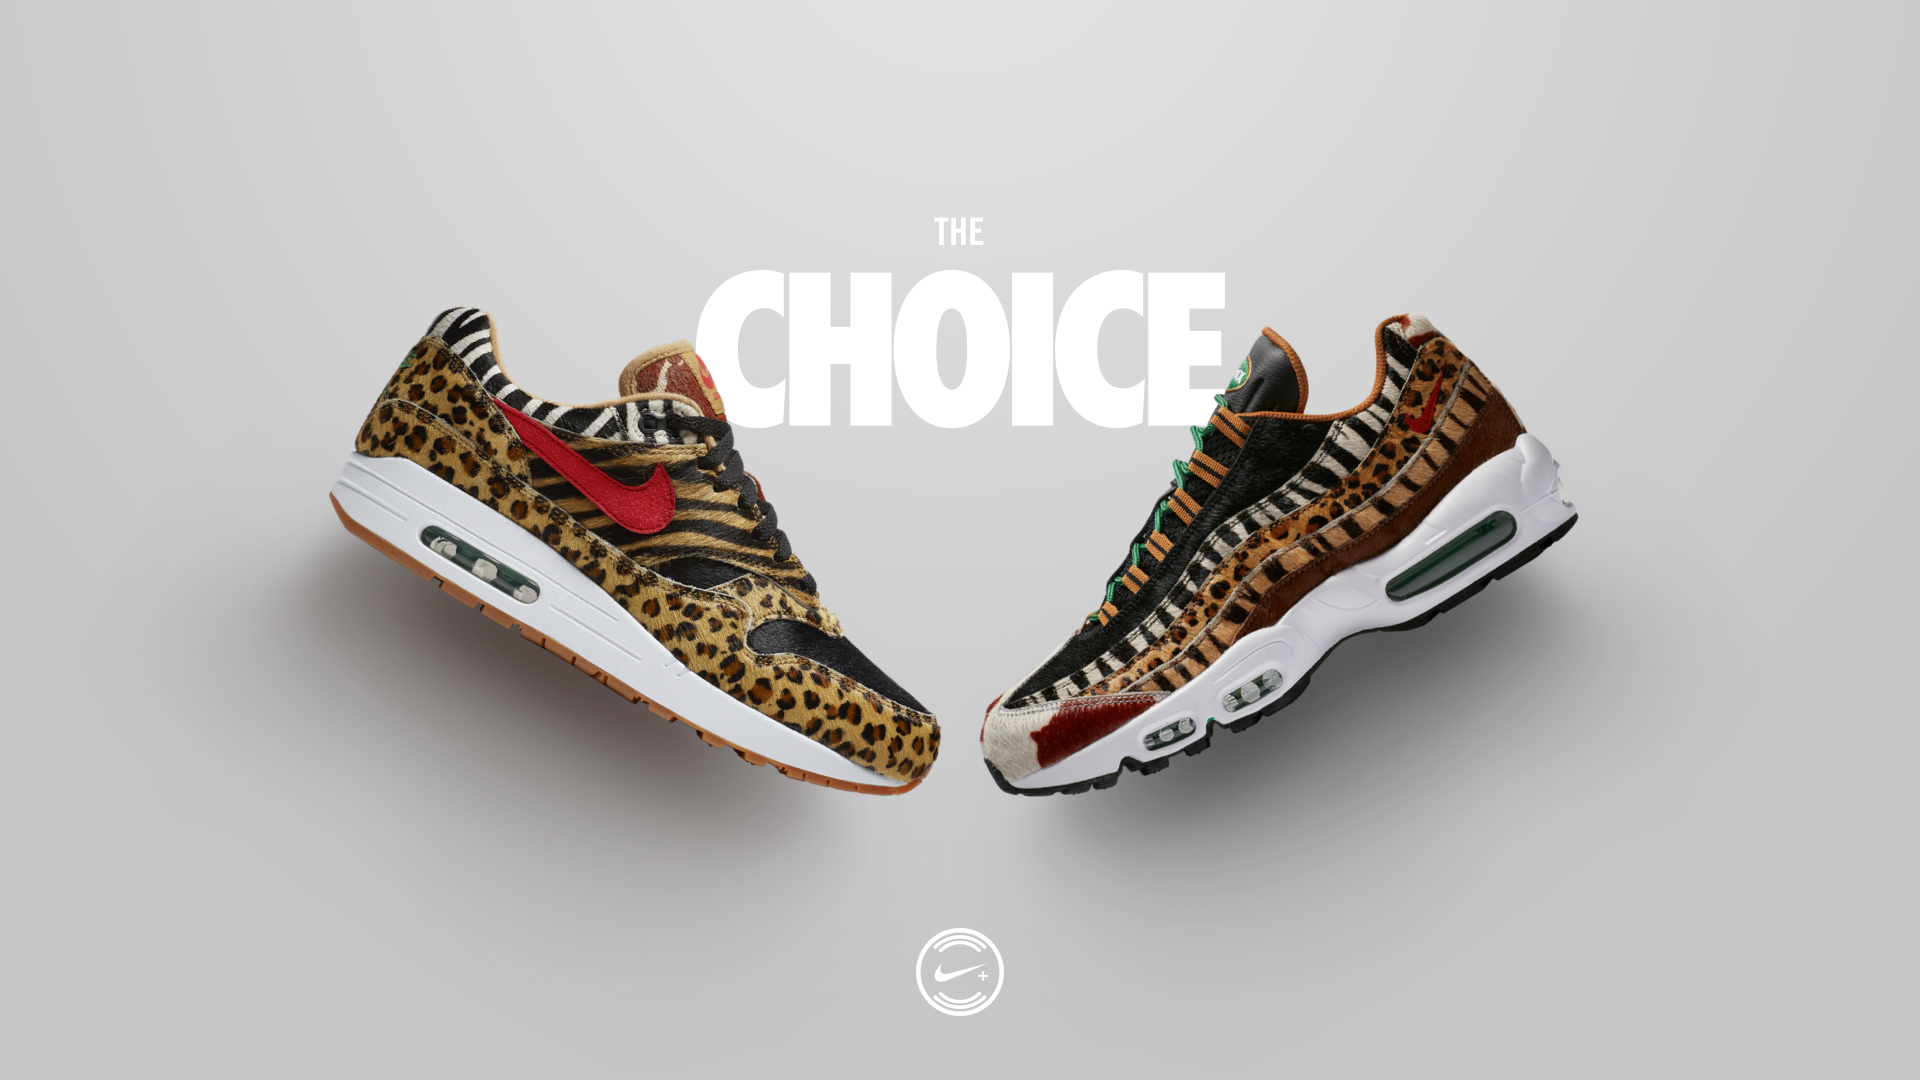 a29b44435 The Choice  Nike Connect NYC - 4.26.2018. Nike+ SNKRS